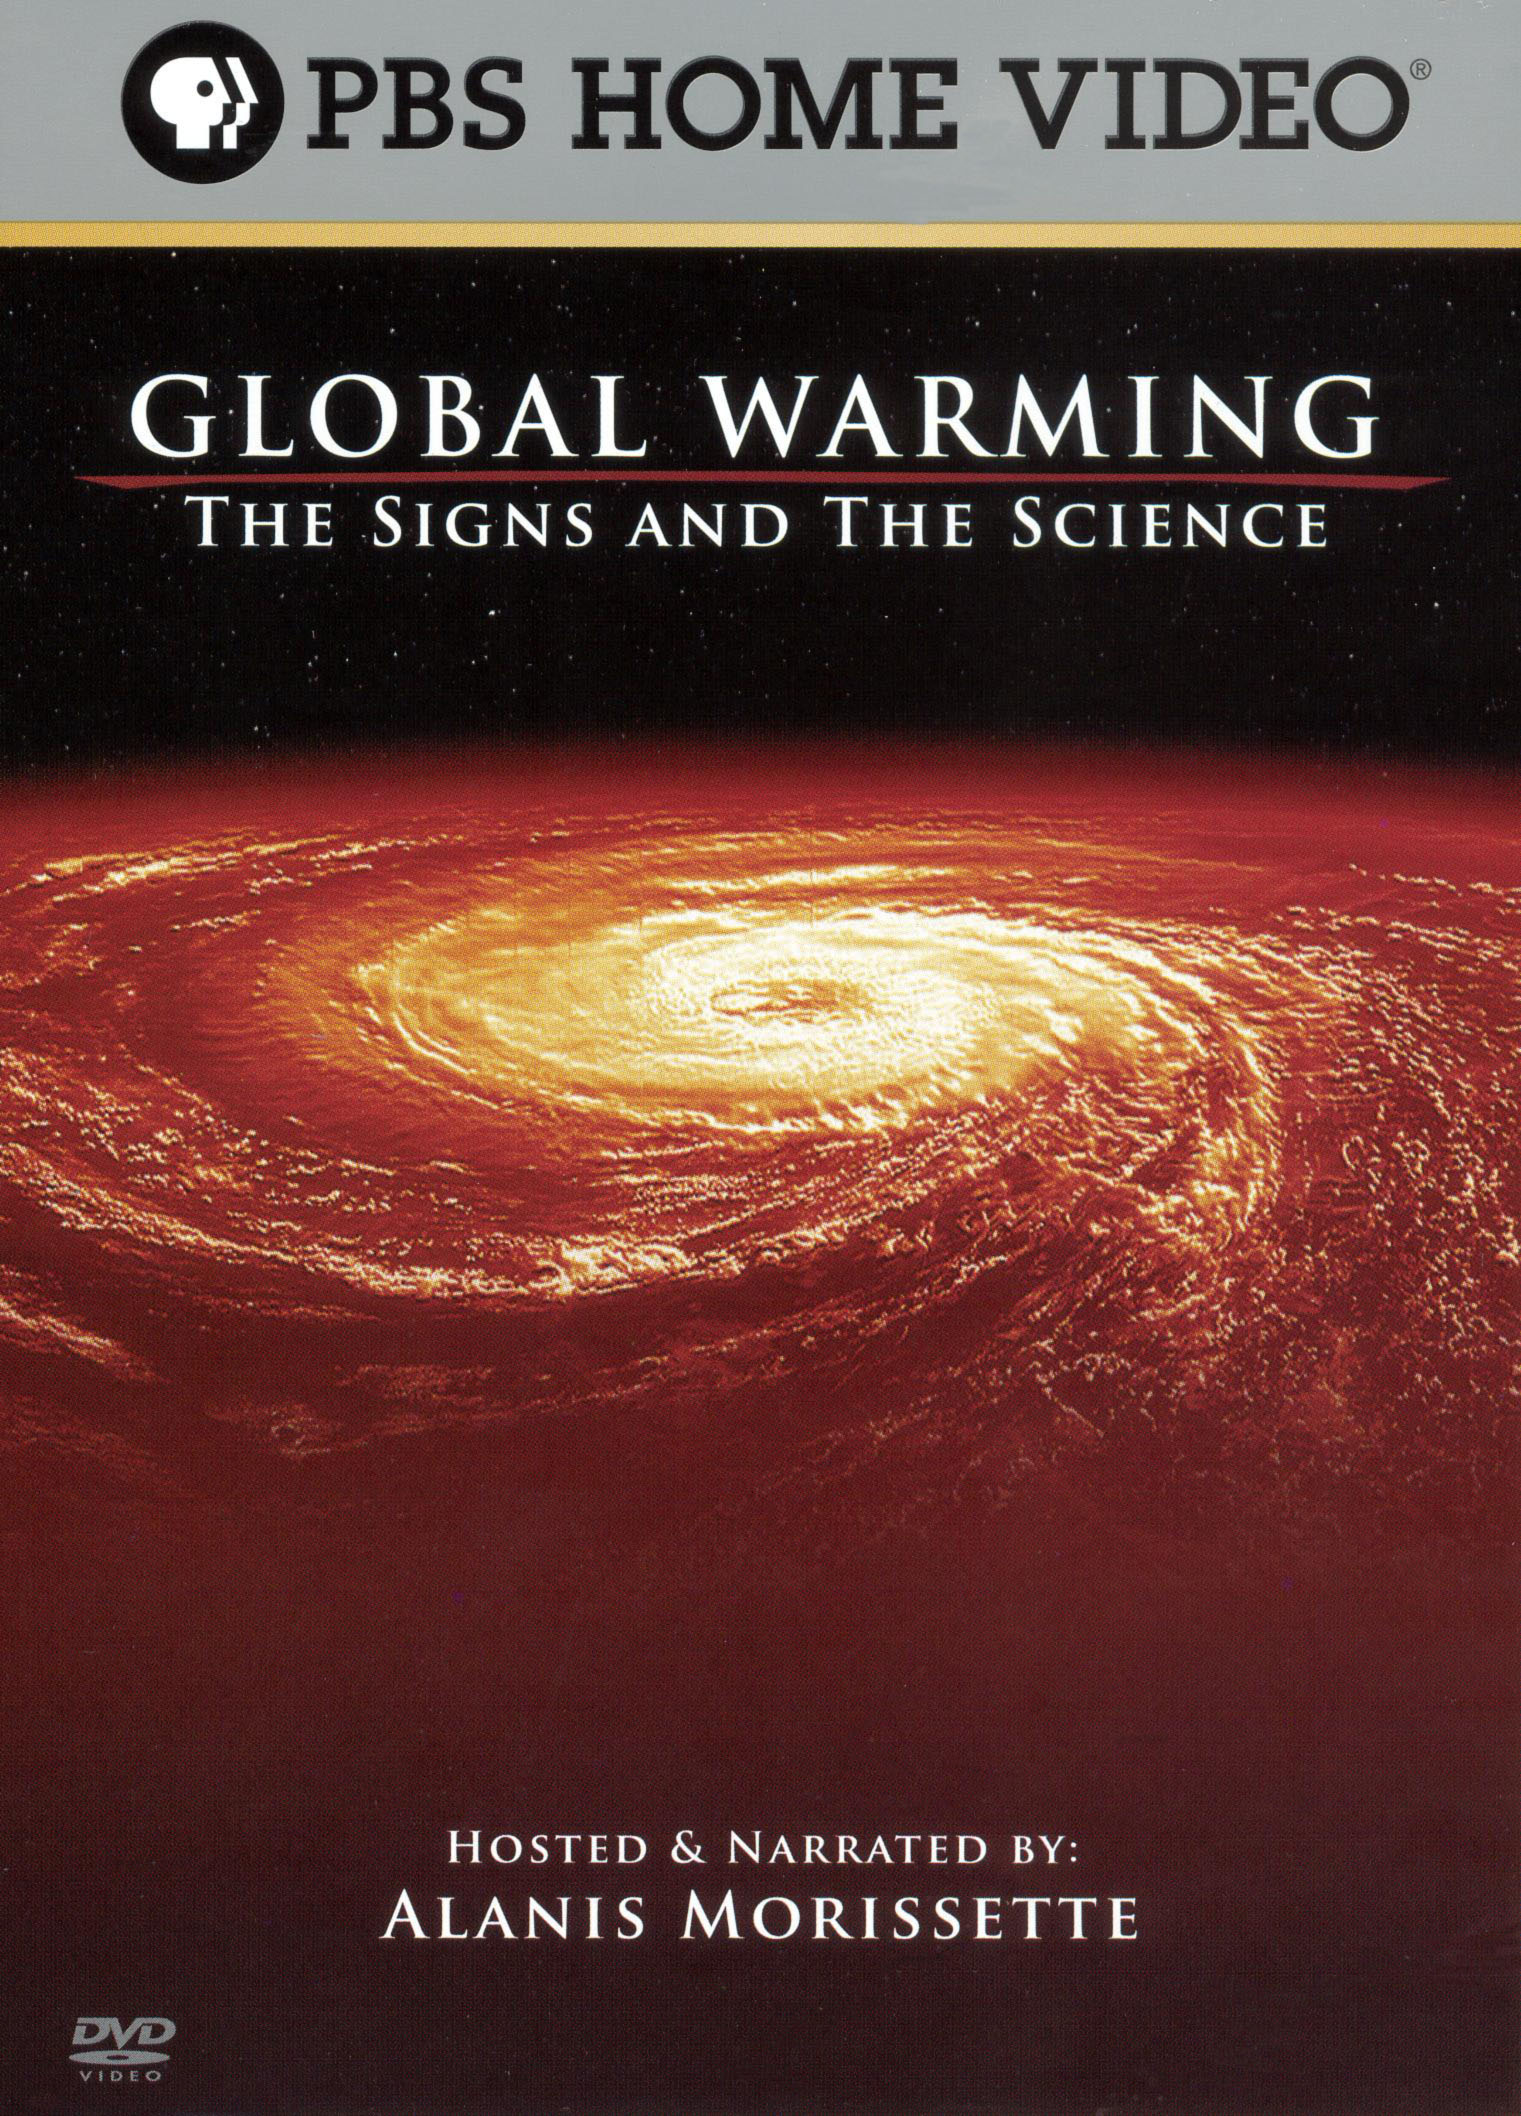 Global Warming: The Signs and the Science